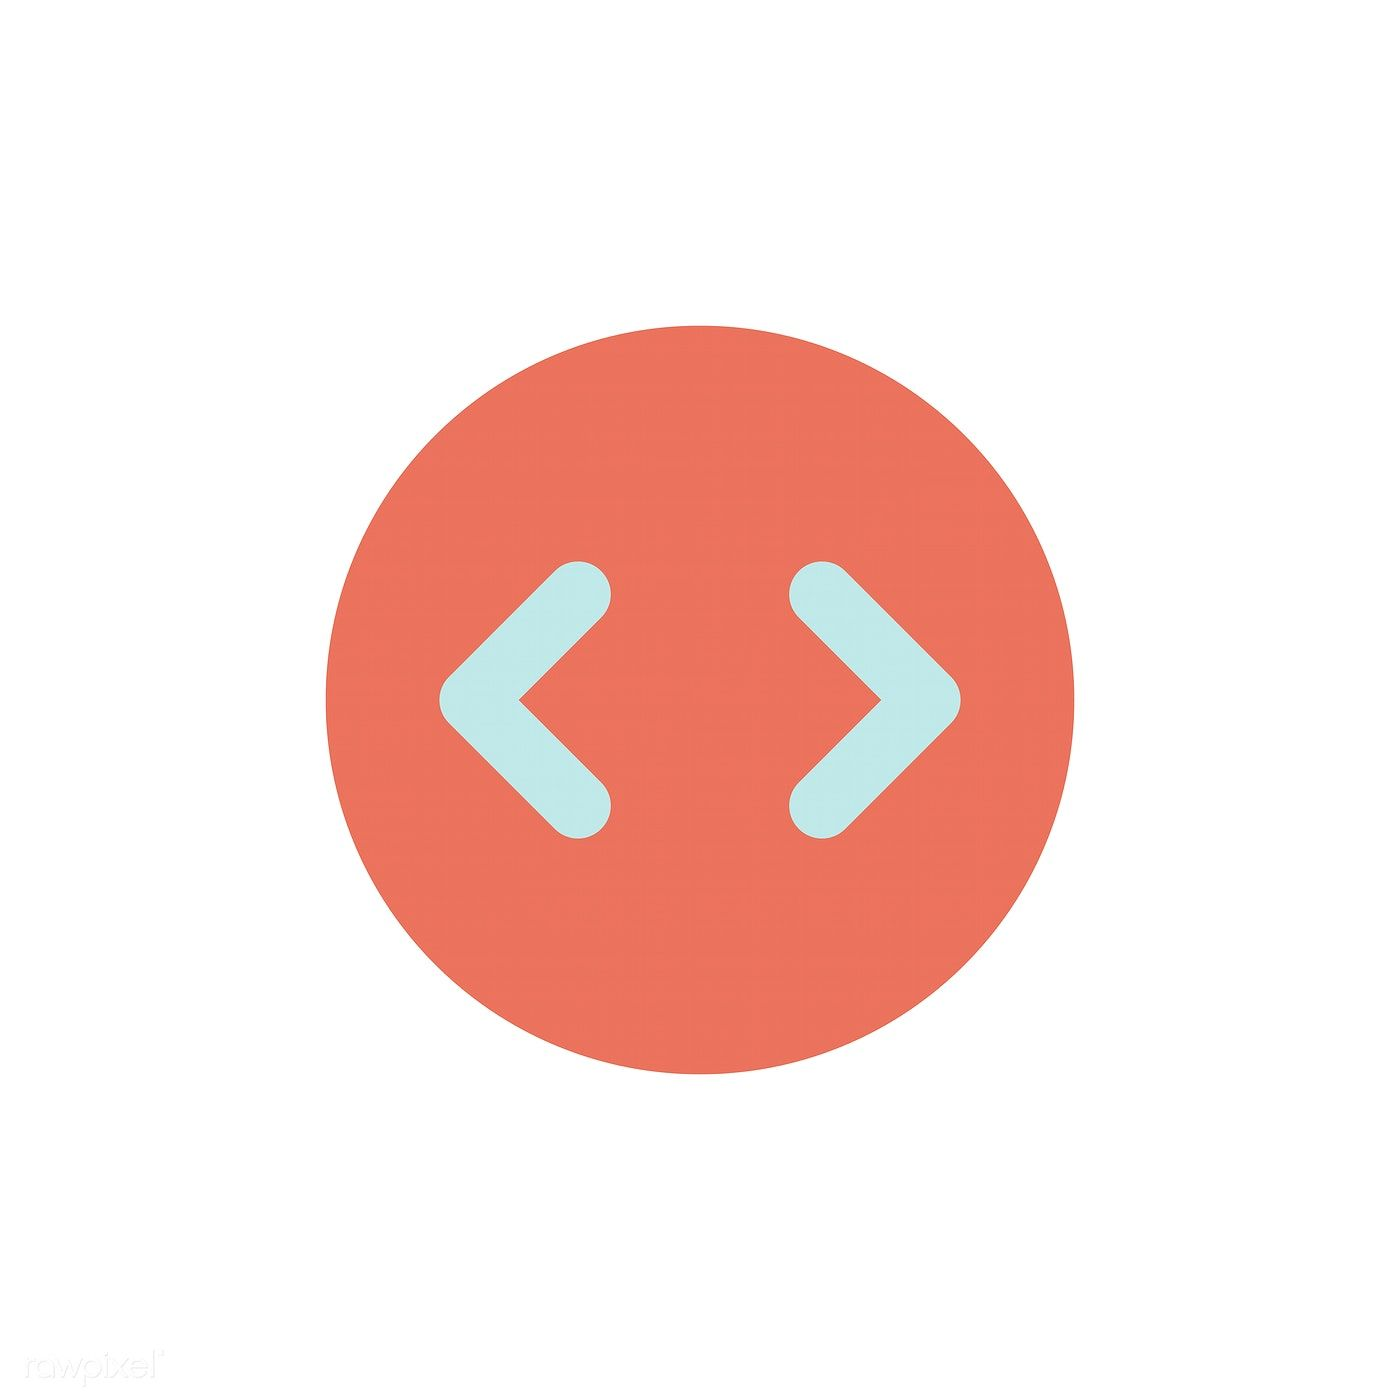 Vector Of Computer Code Icon Free Image By Rawpixel Com Ningzk V